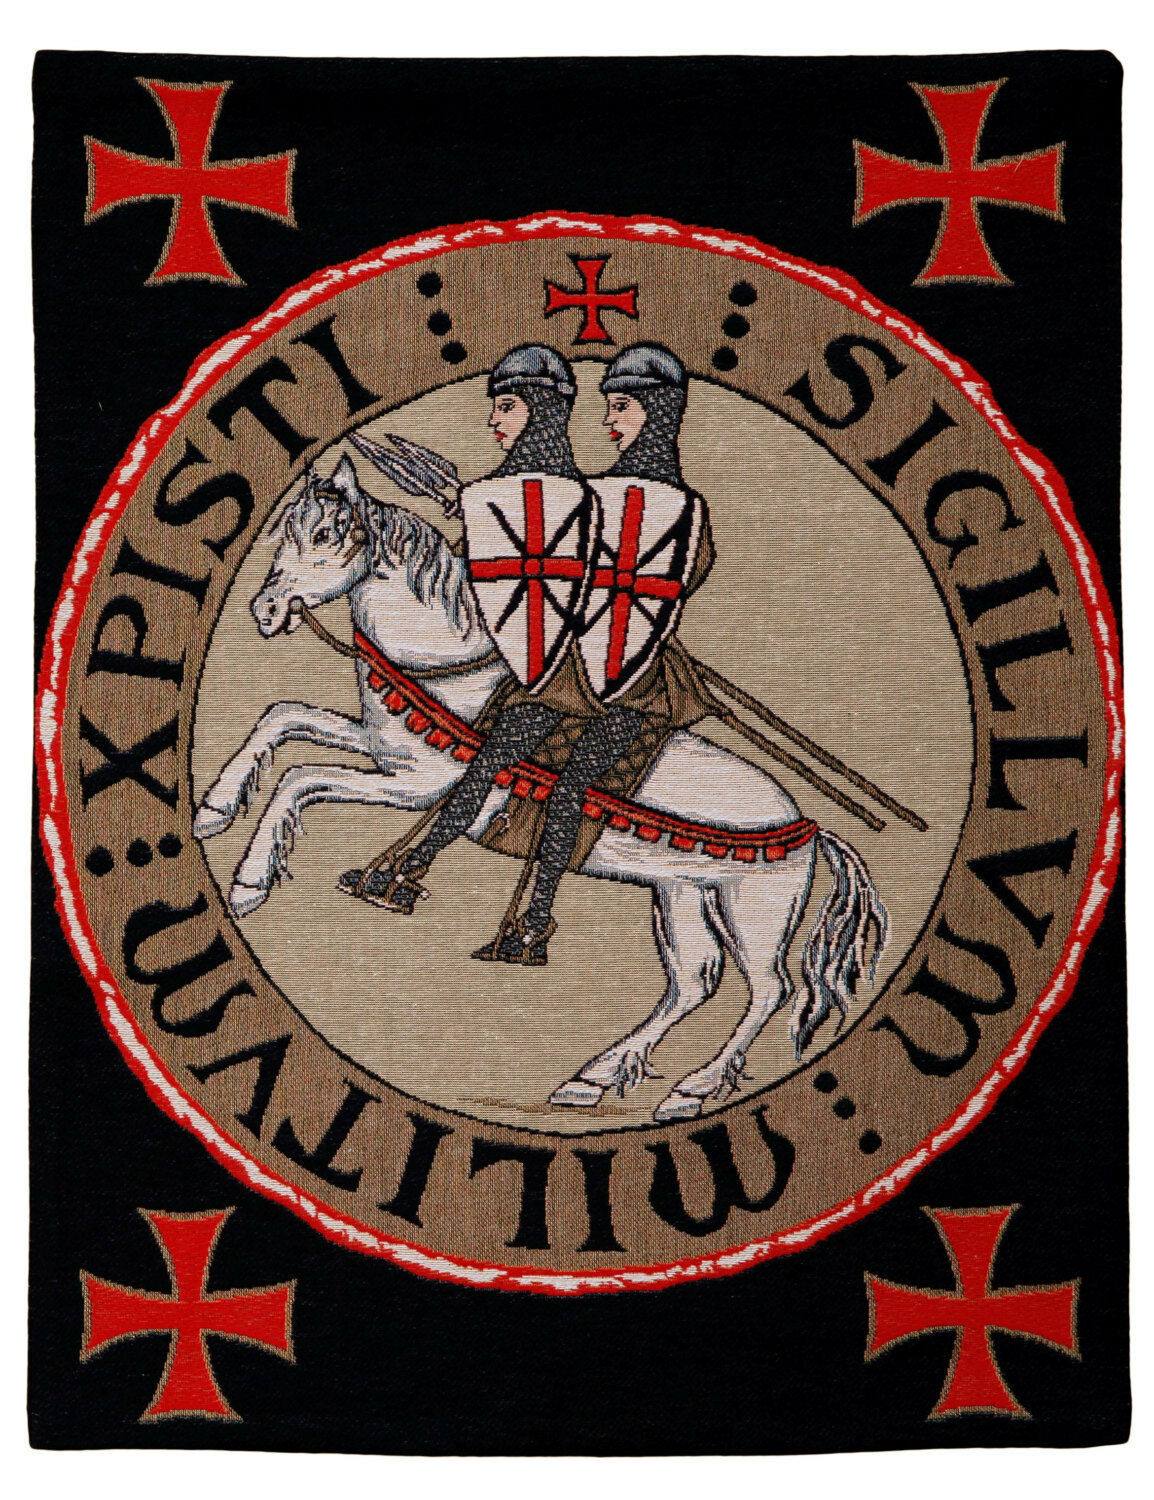 Belgian wall tapestry hanging wall decor seal with two templars